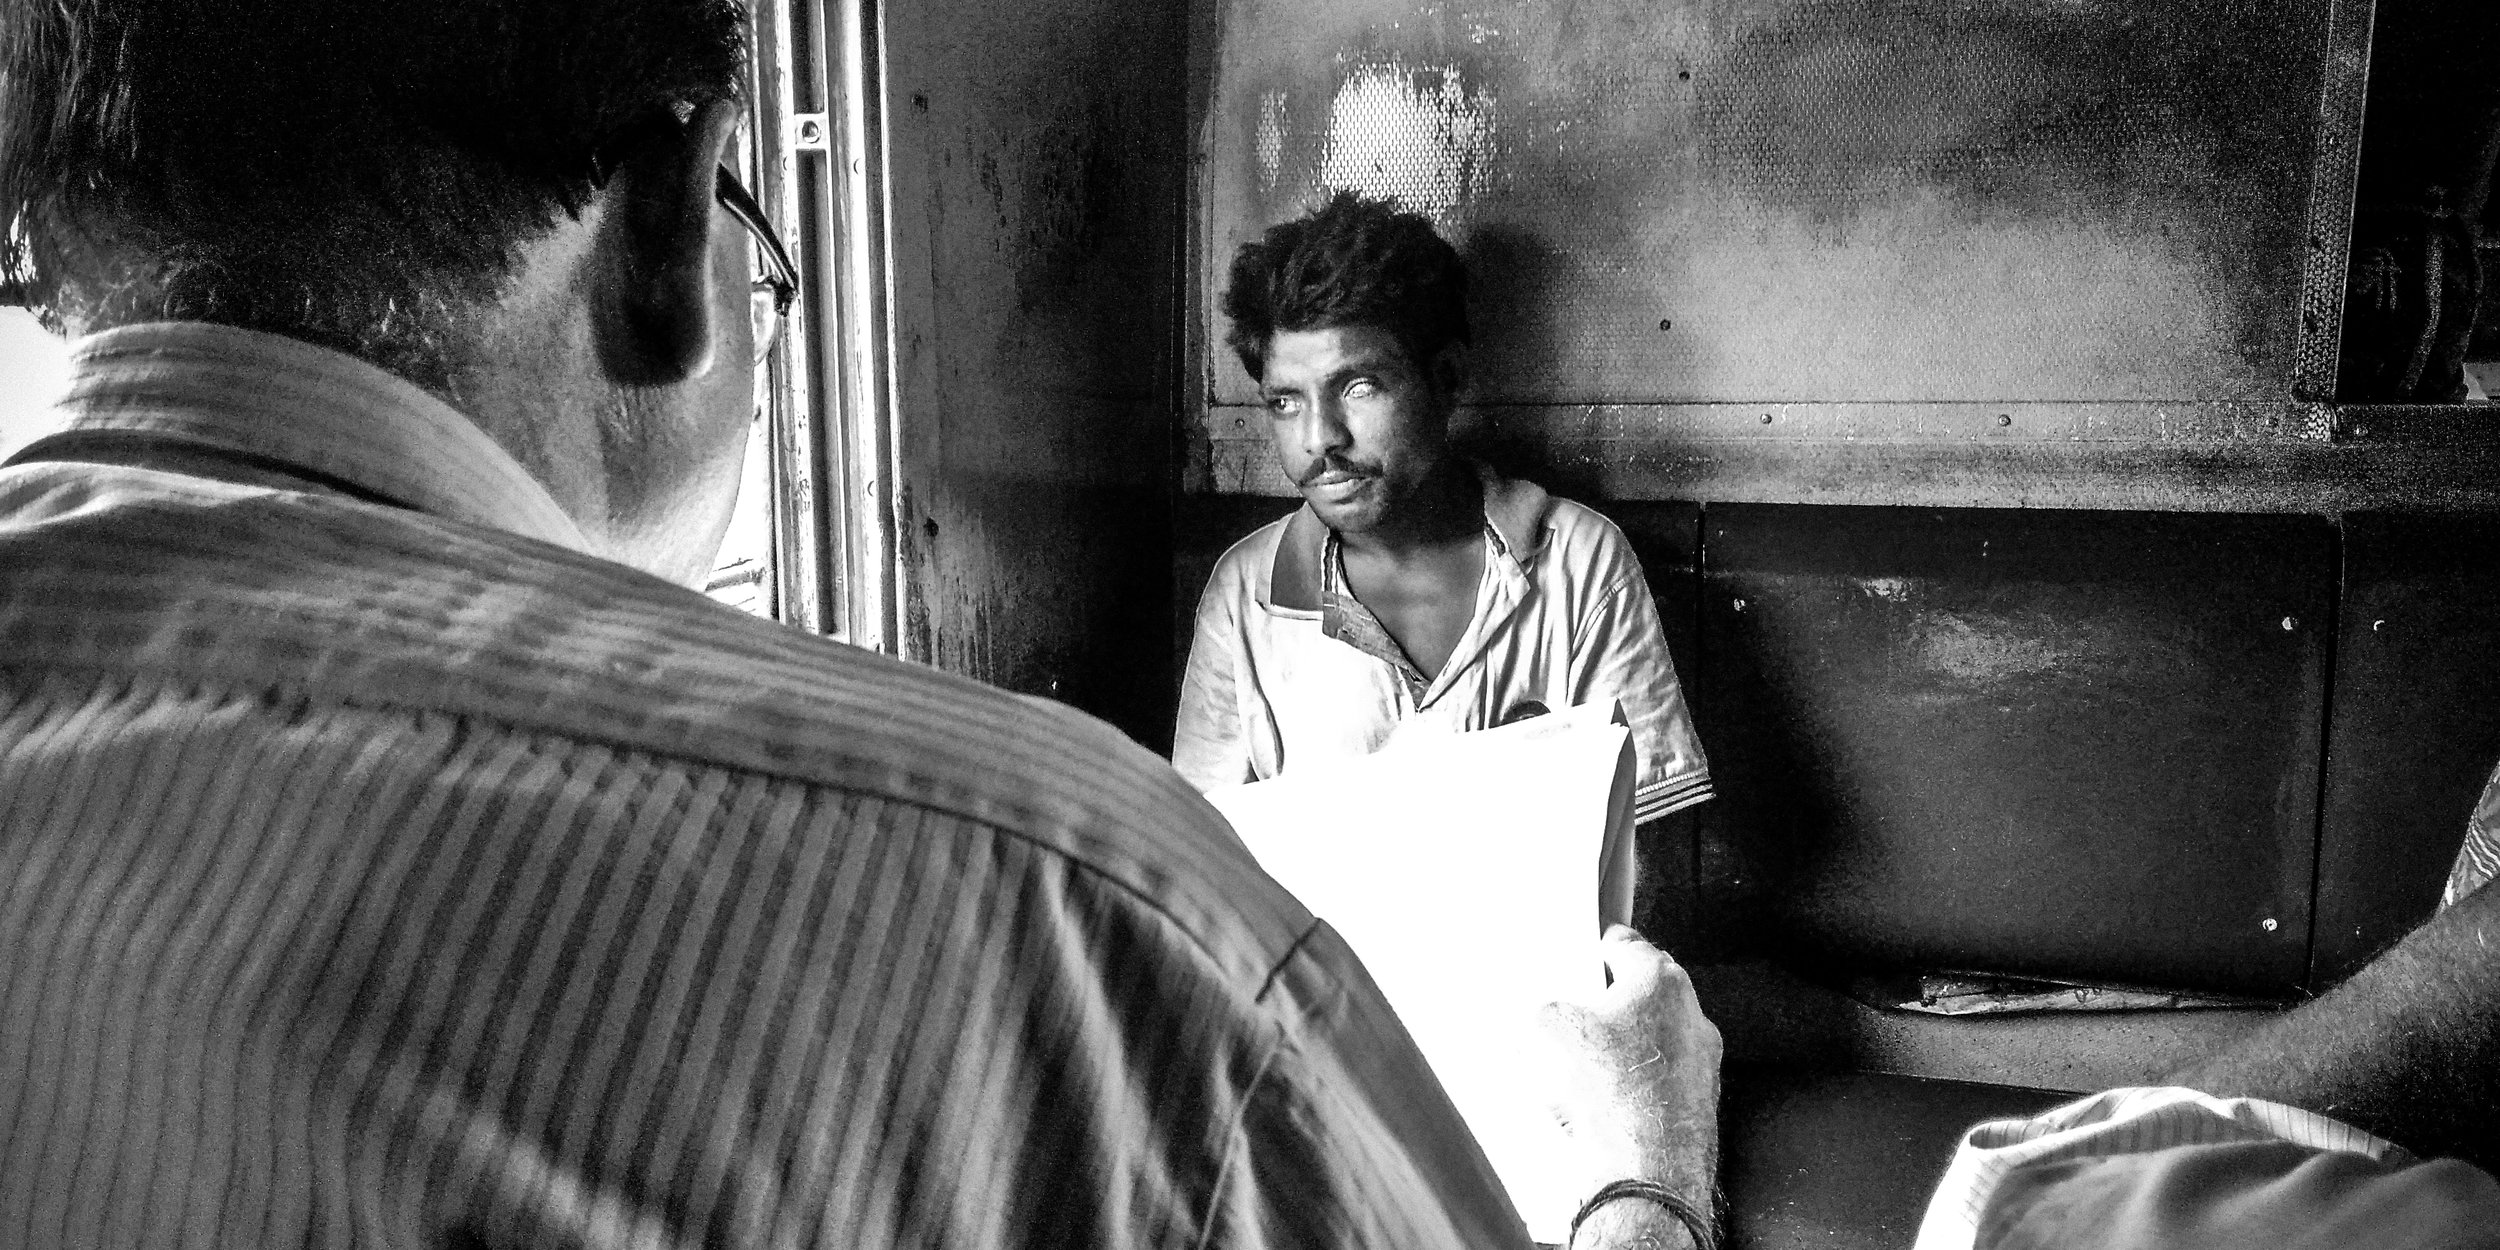 An one-eyed man going for routine checkup. Date: 6 July, 2019  Location: Krishnanagar, West Bengal 741101, India